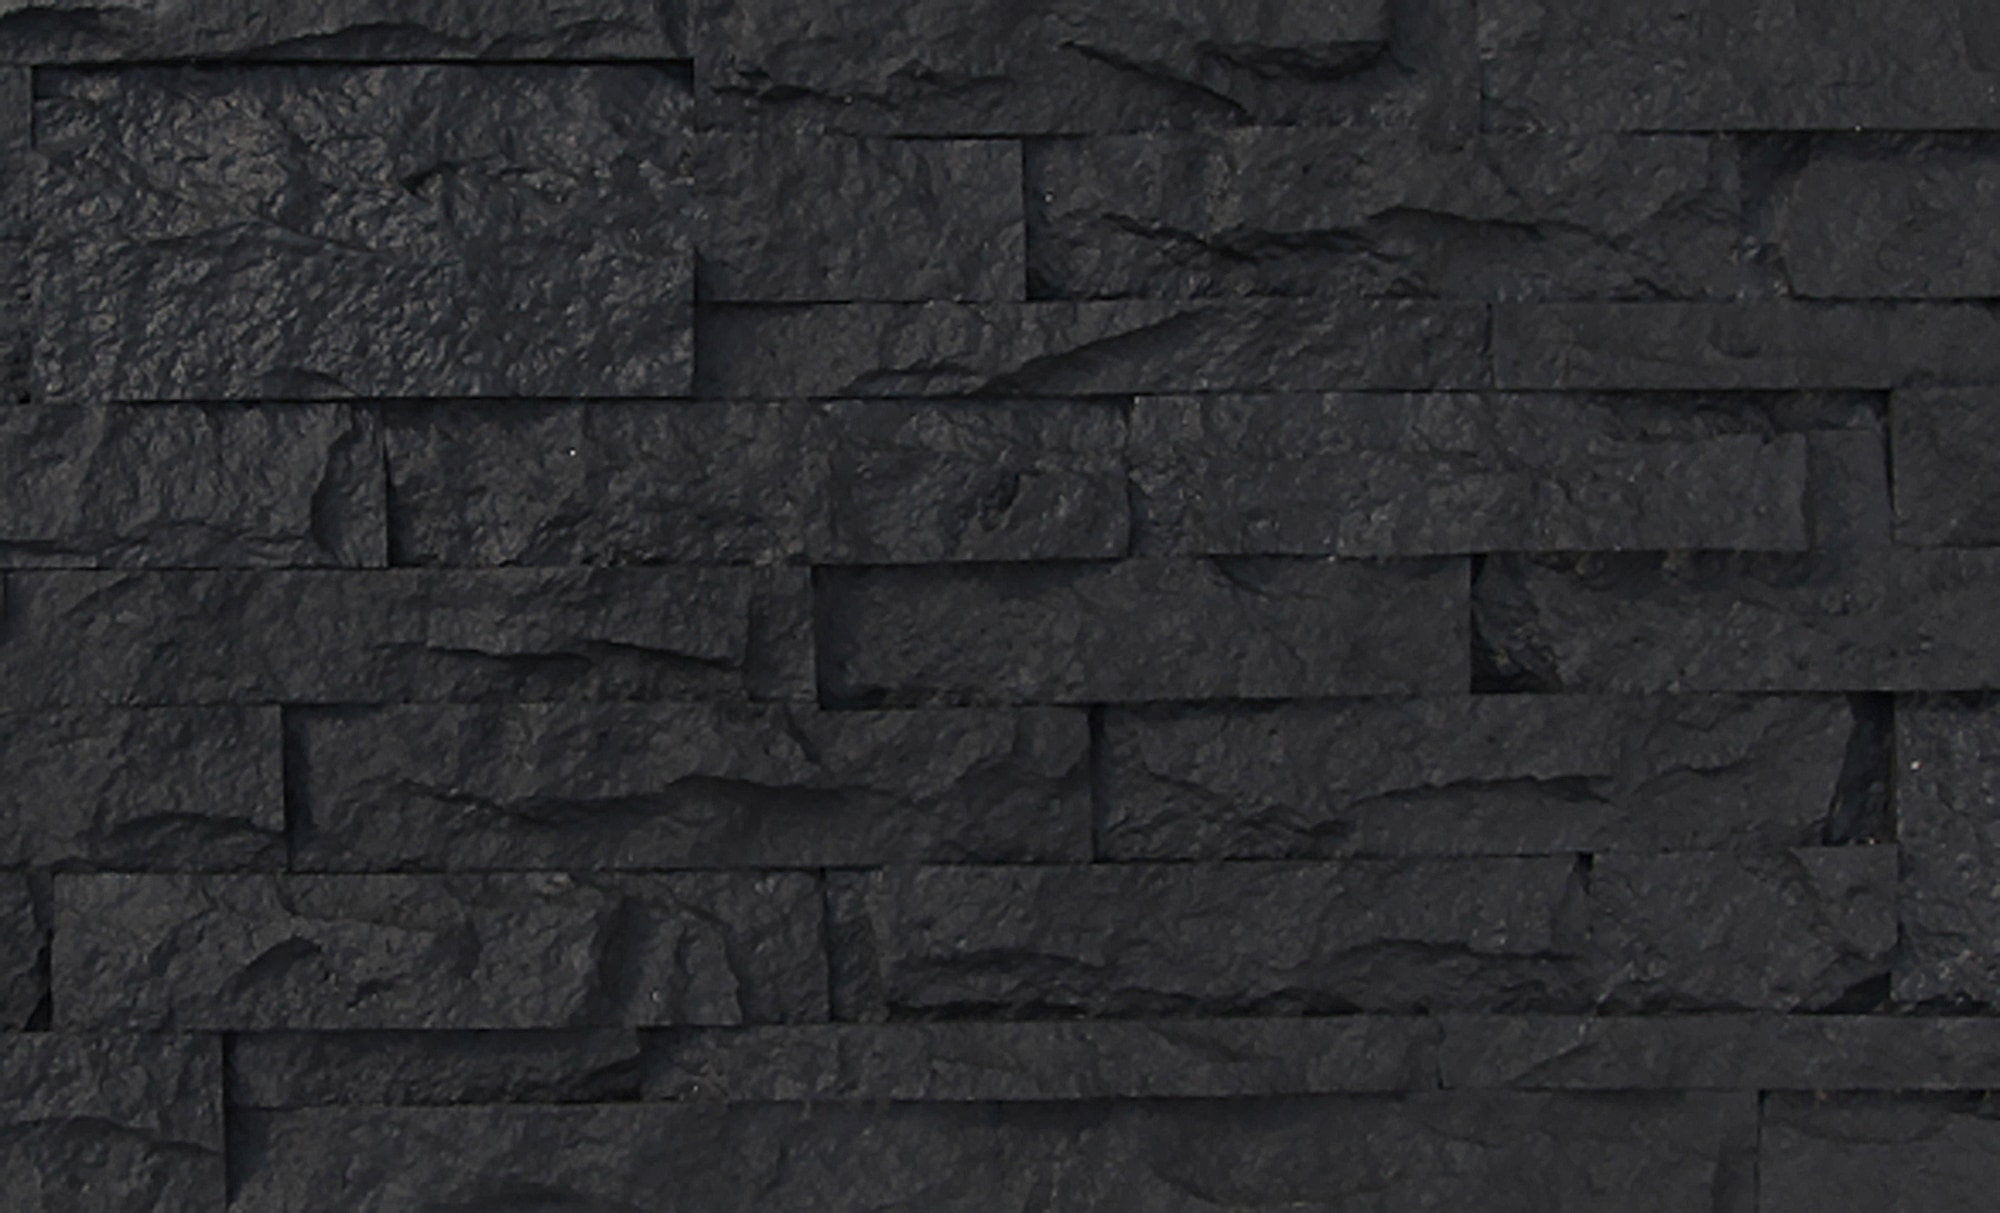 Black stone exterior wall images for Exterior background